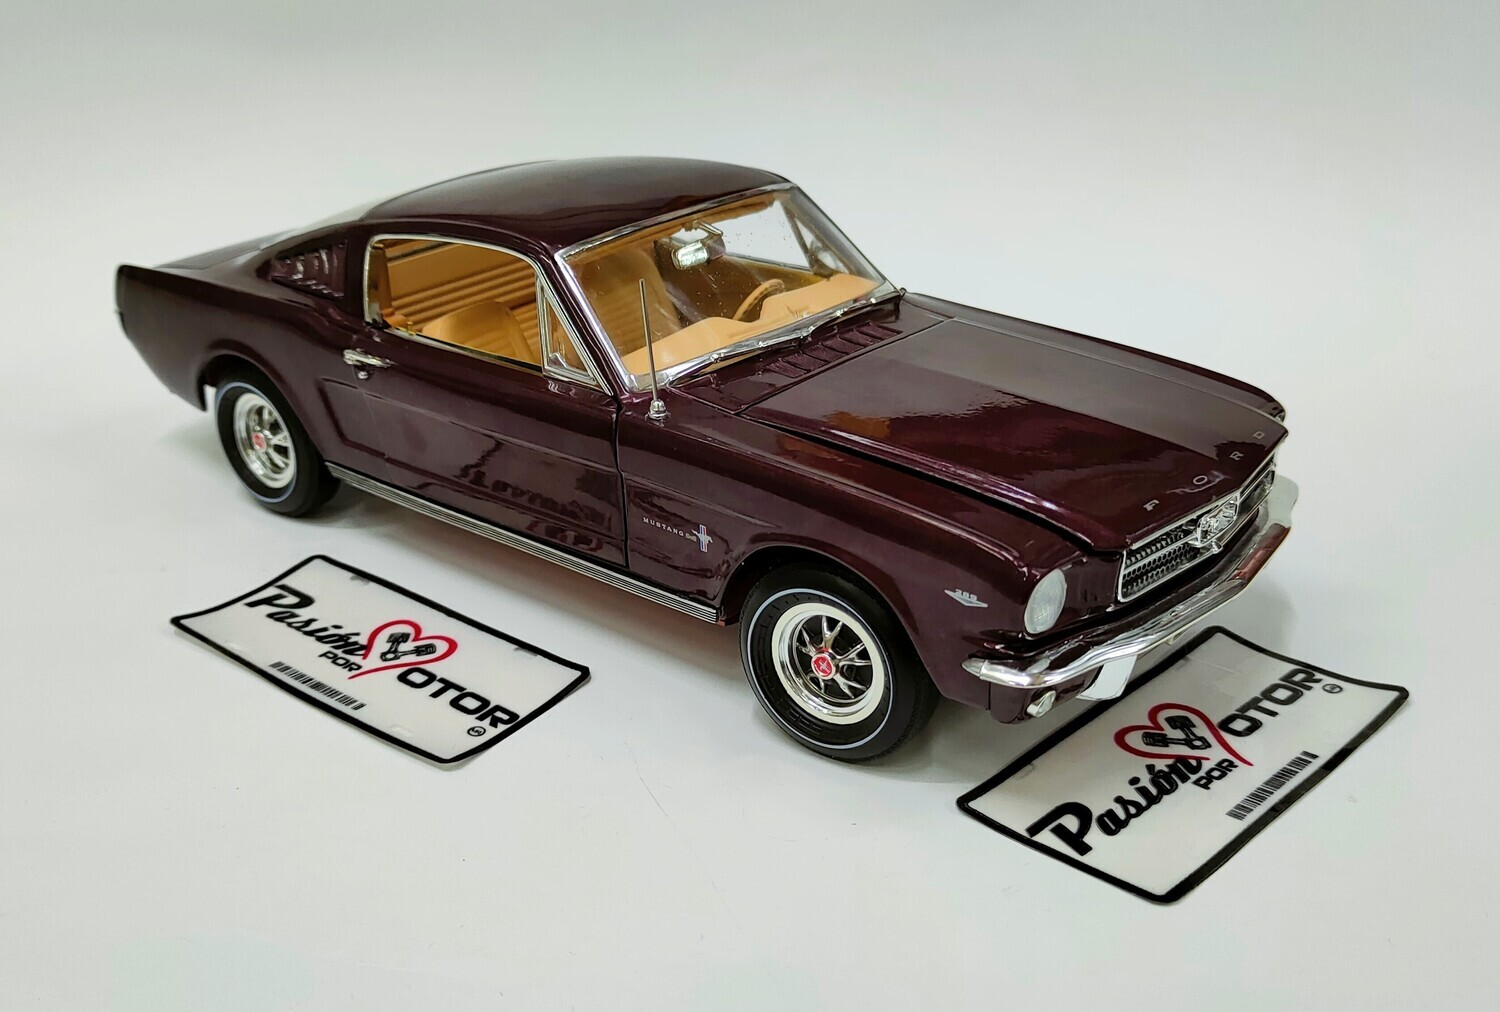 Auto World 1:18 Ford Mustang 2+2 Coupe Fastback 1965 Cafe American Muscle Con Caja